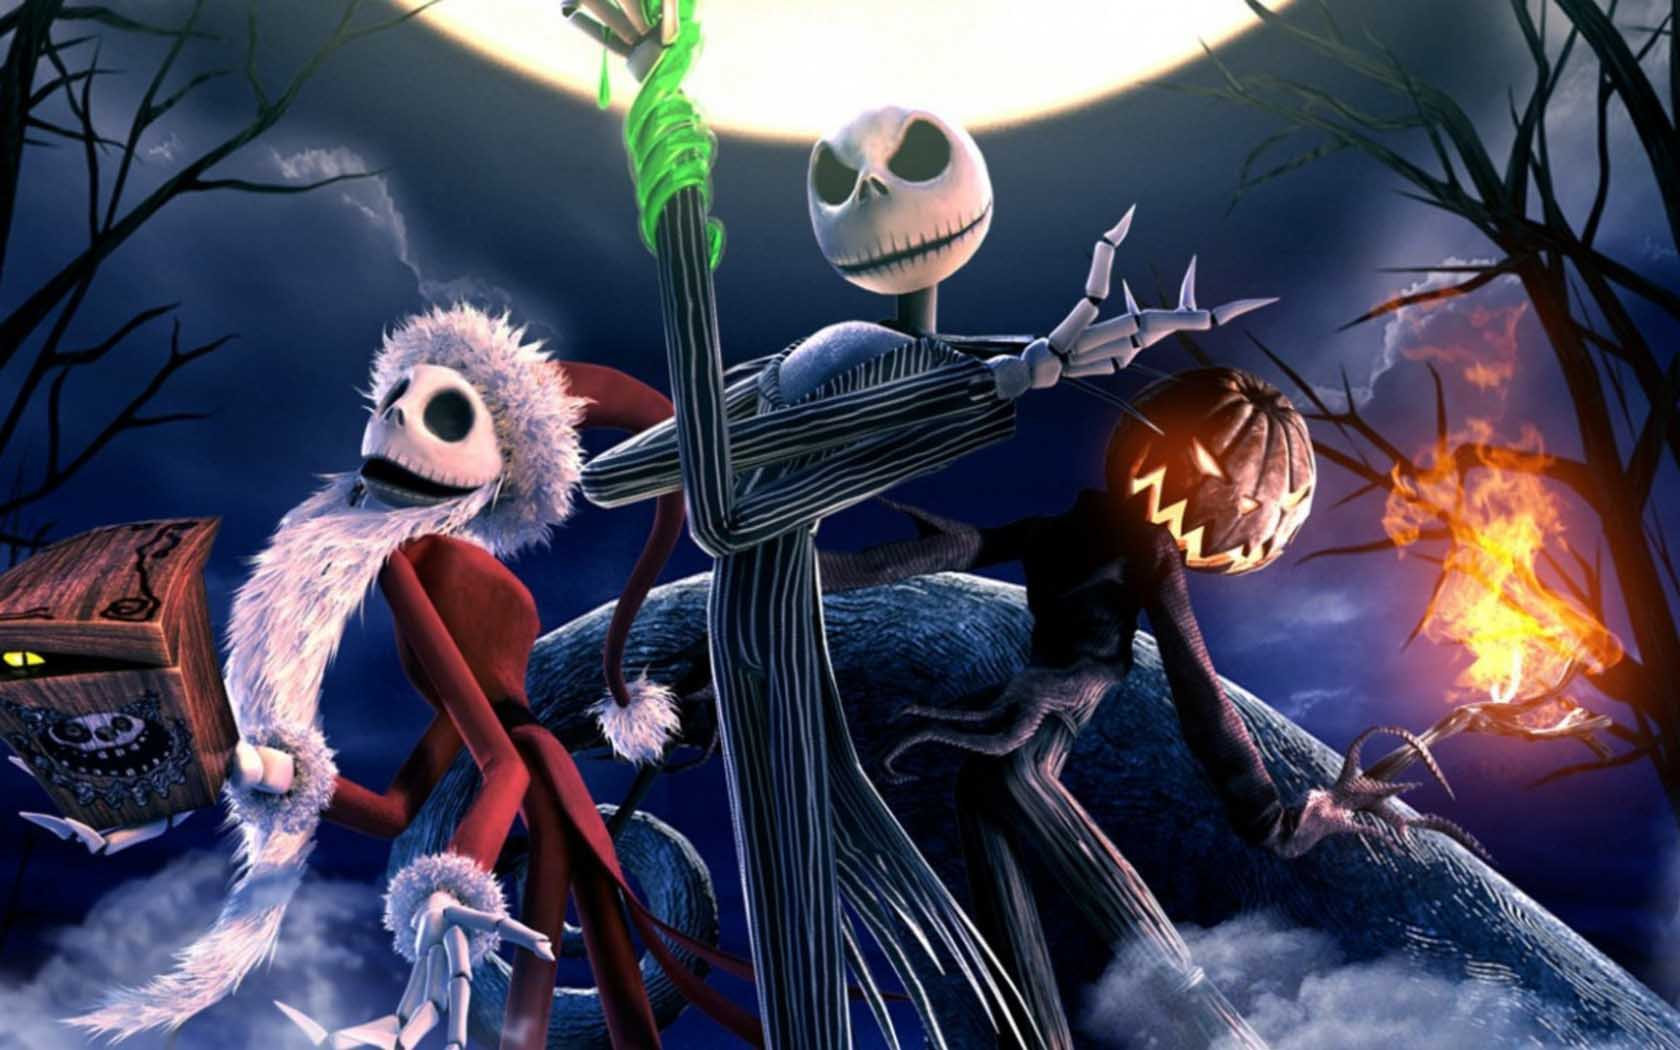 Nightmare Before Christmas Hd Wallpaper.Nightmare Before Christmas Wallpapers Hd Wallpaper Cave